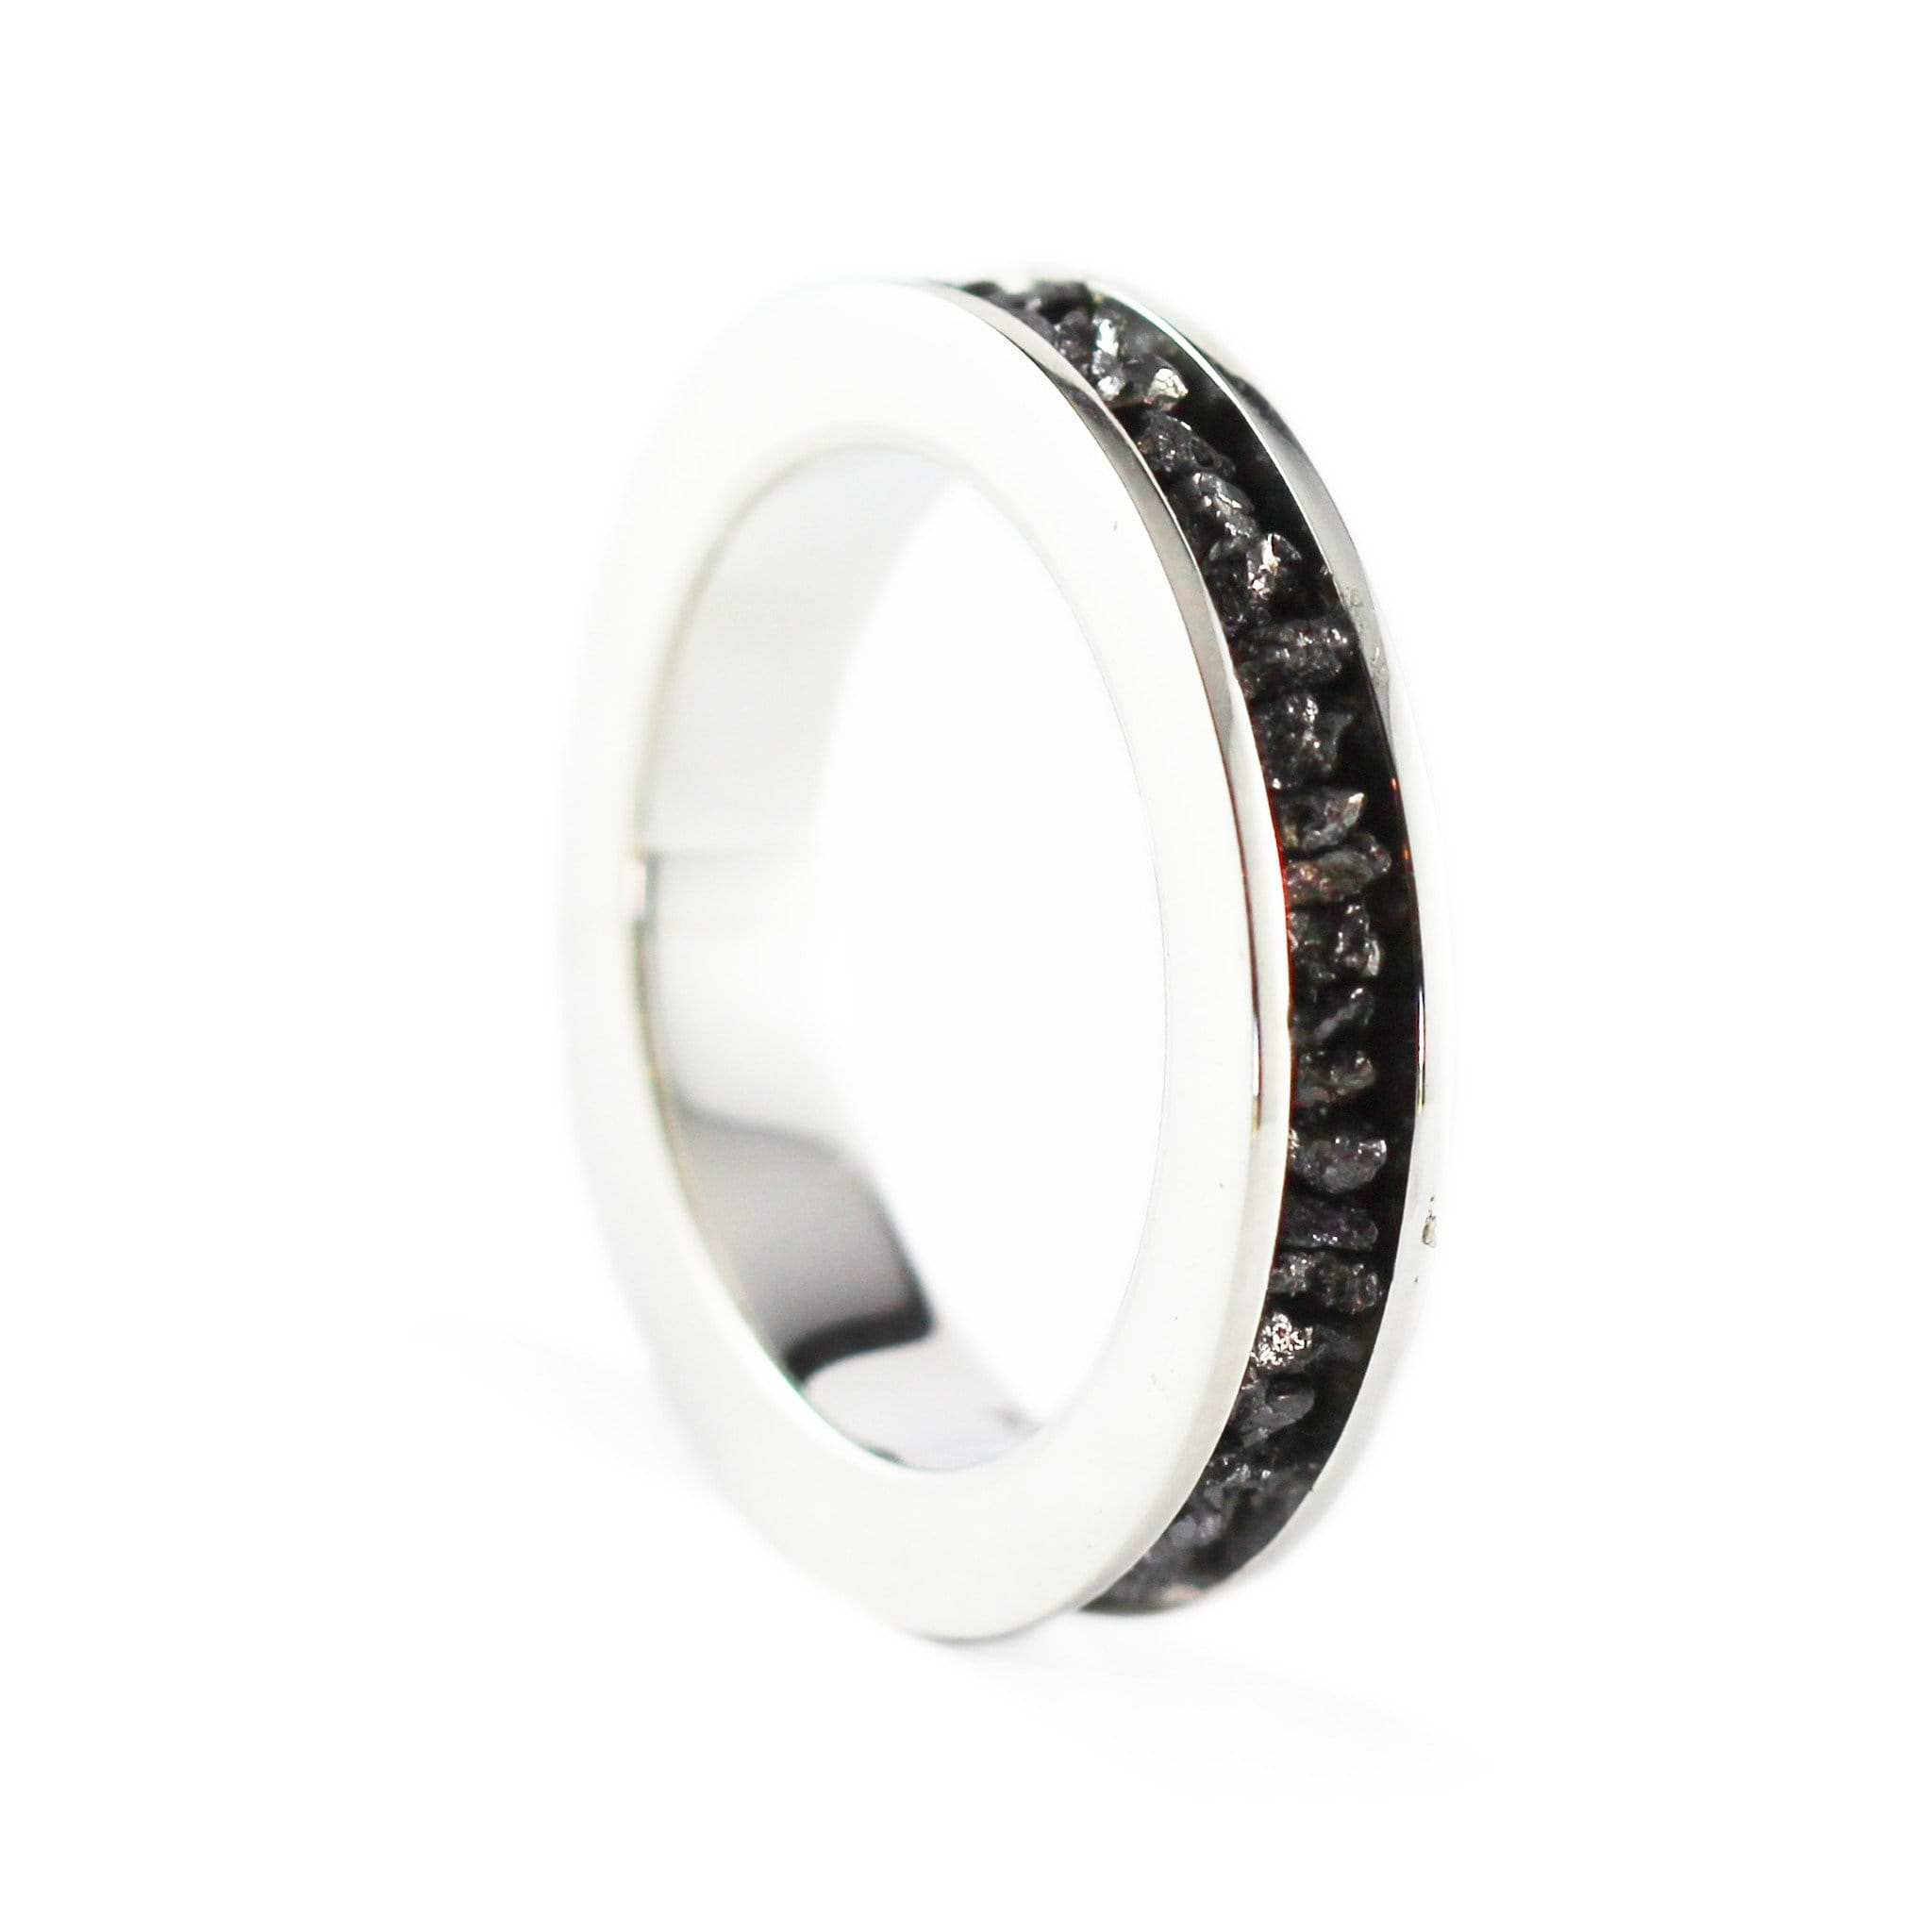 rings product black normal jewelry yurman ring titanium row streamline lyst in david diamond gallery two band